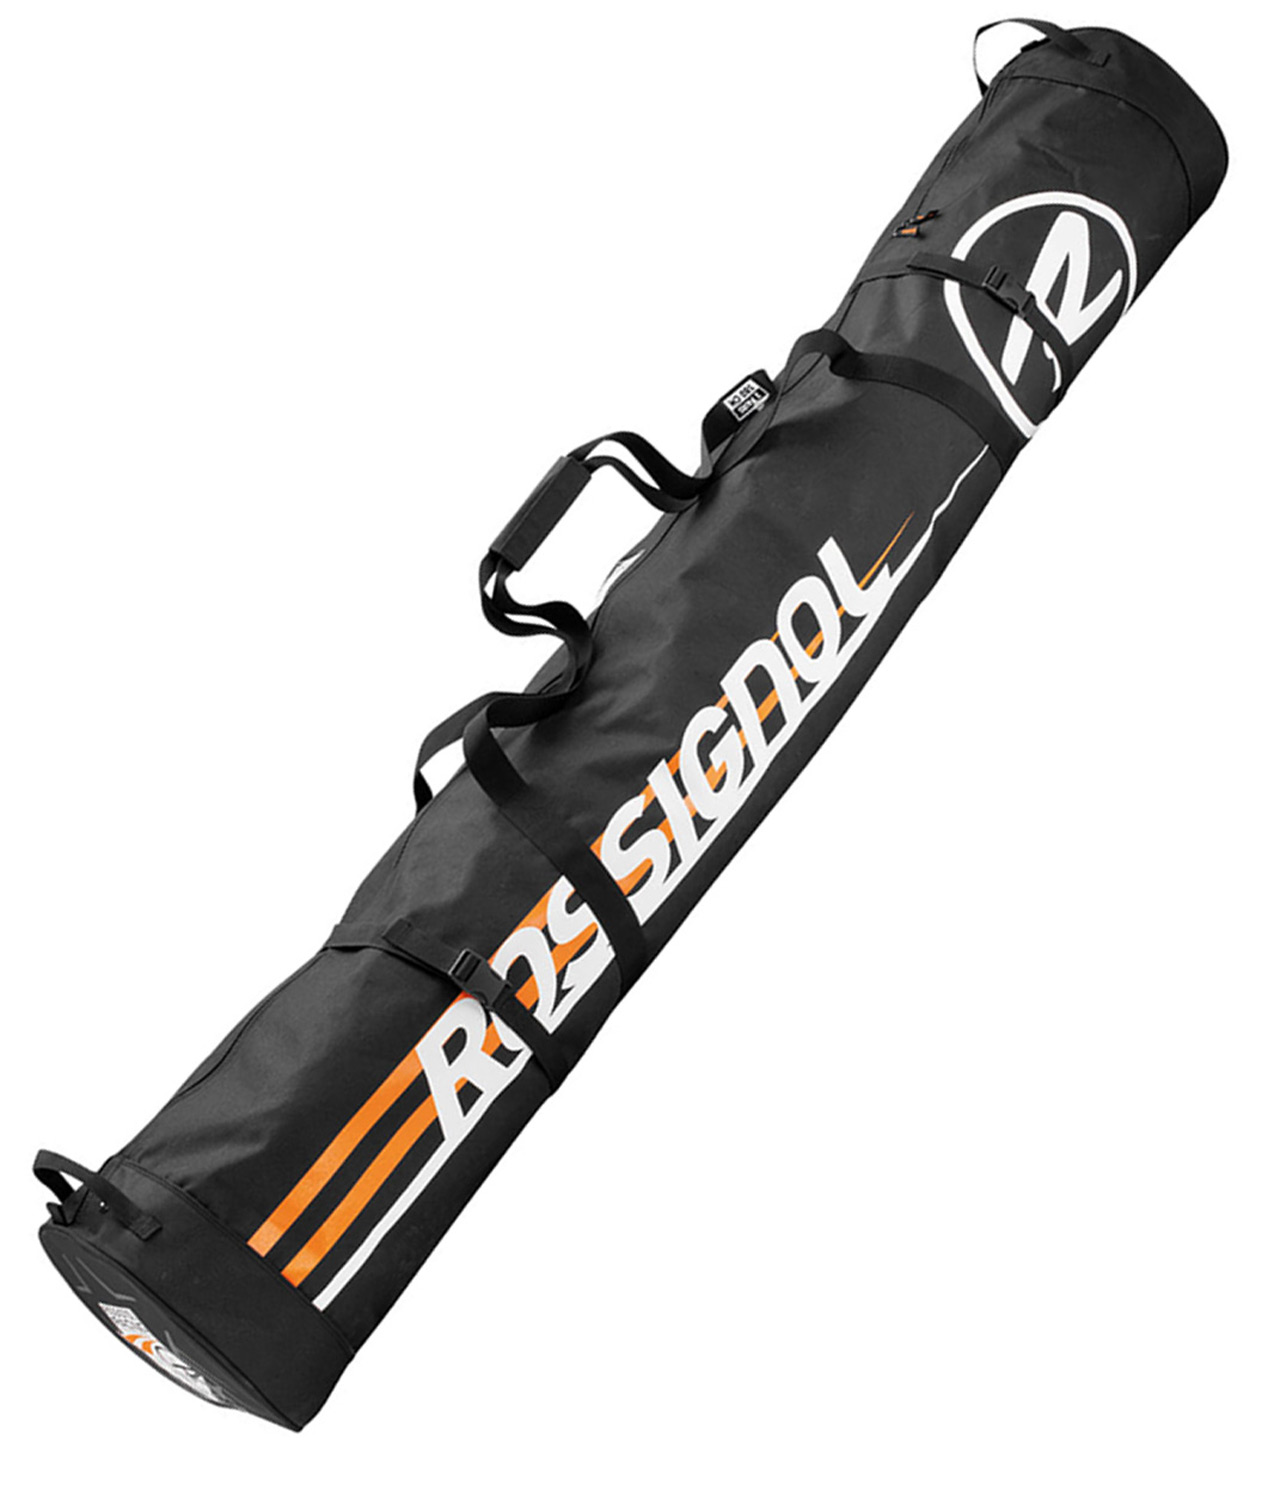 Ski Holds 10 pair Xc Skis, up to 210cm - $100.00